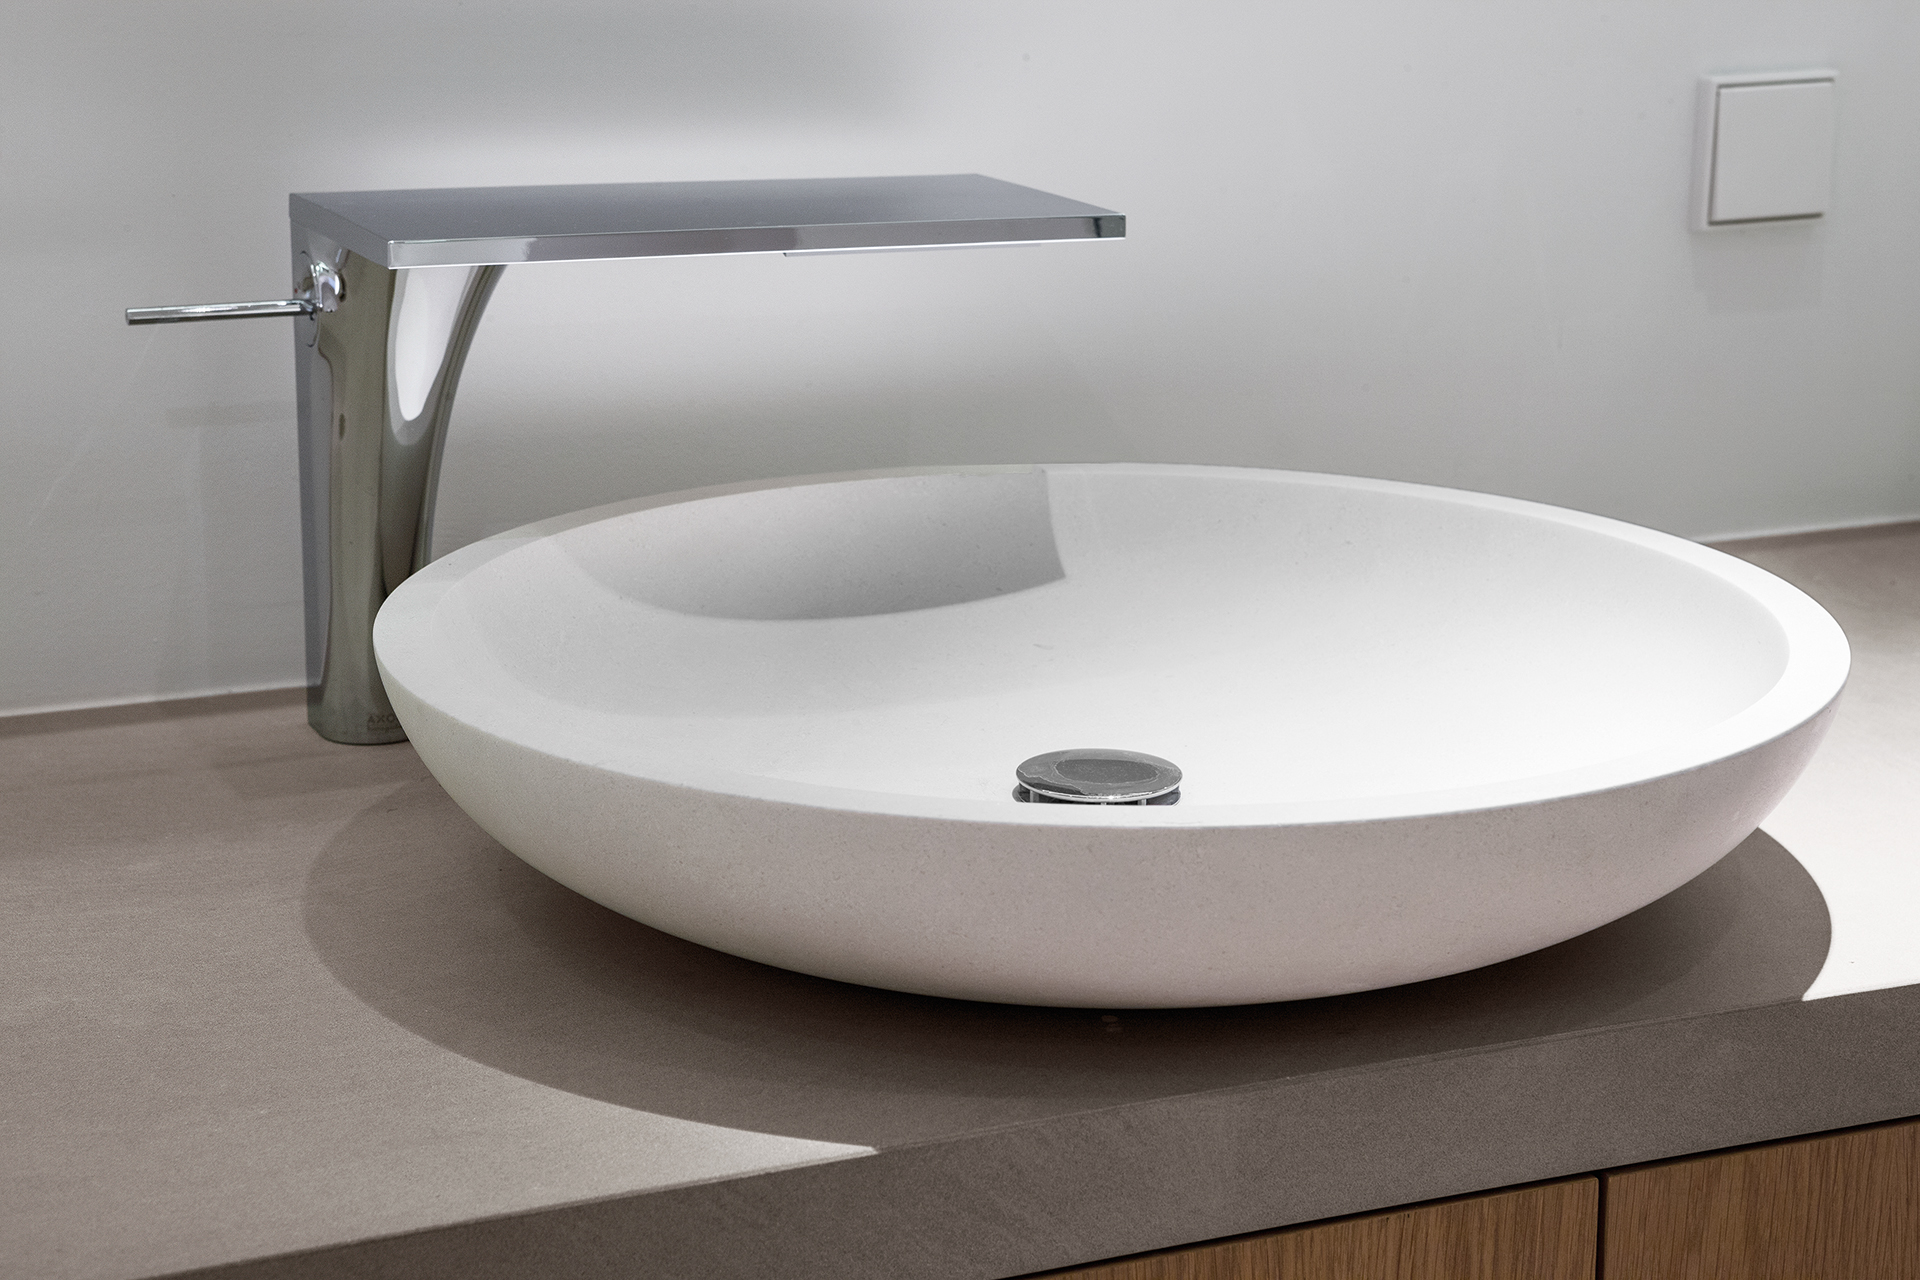 Stylish modern sink with a wide pour flat head